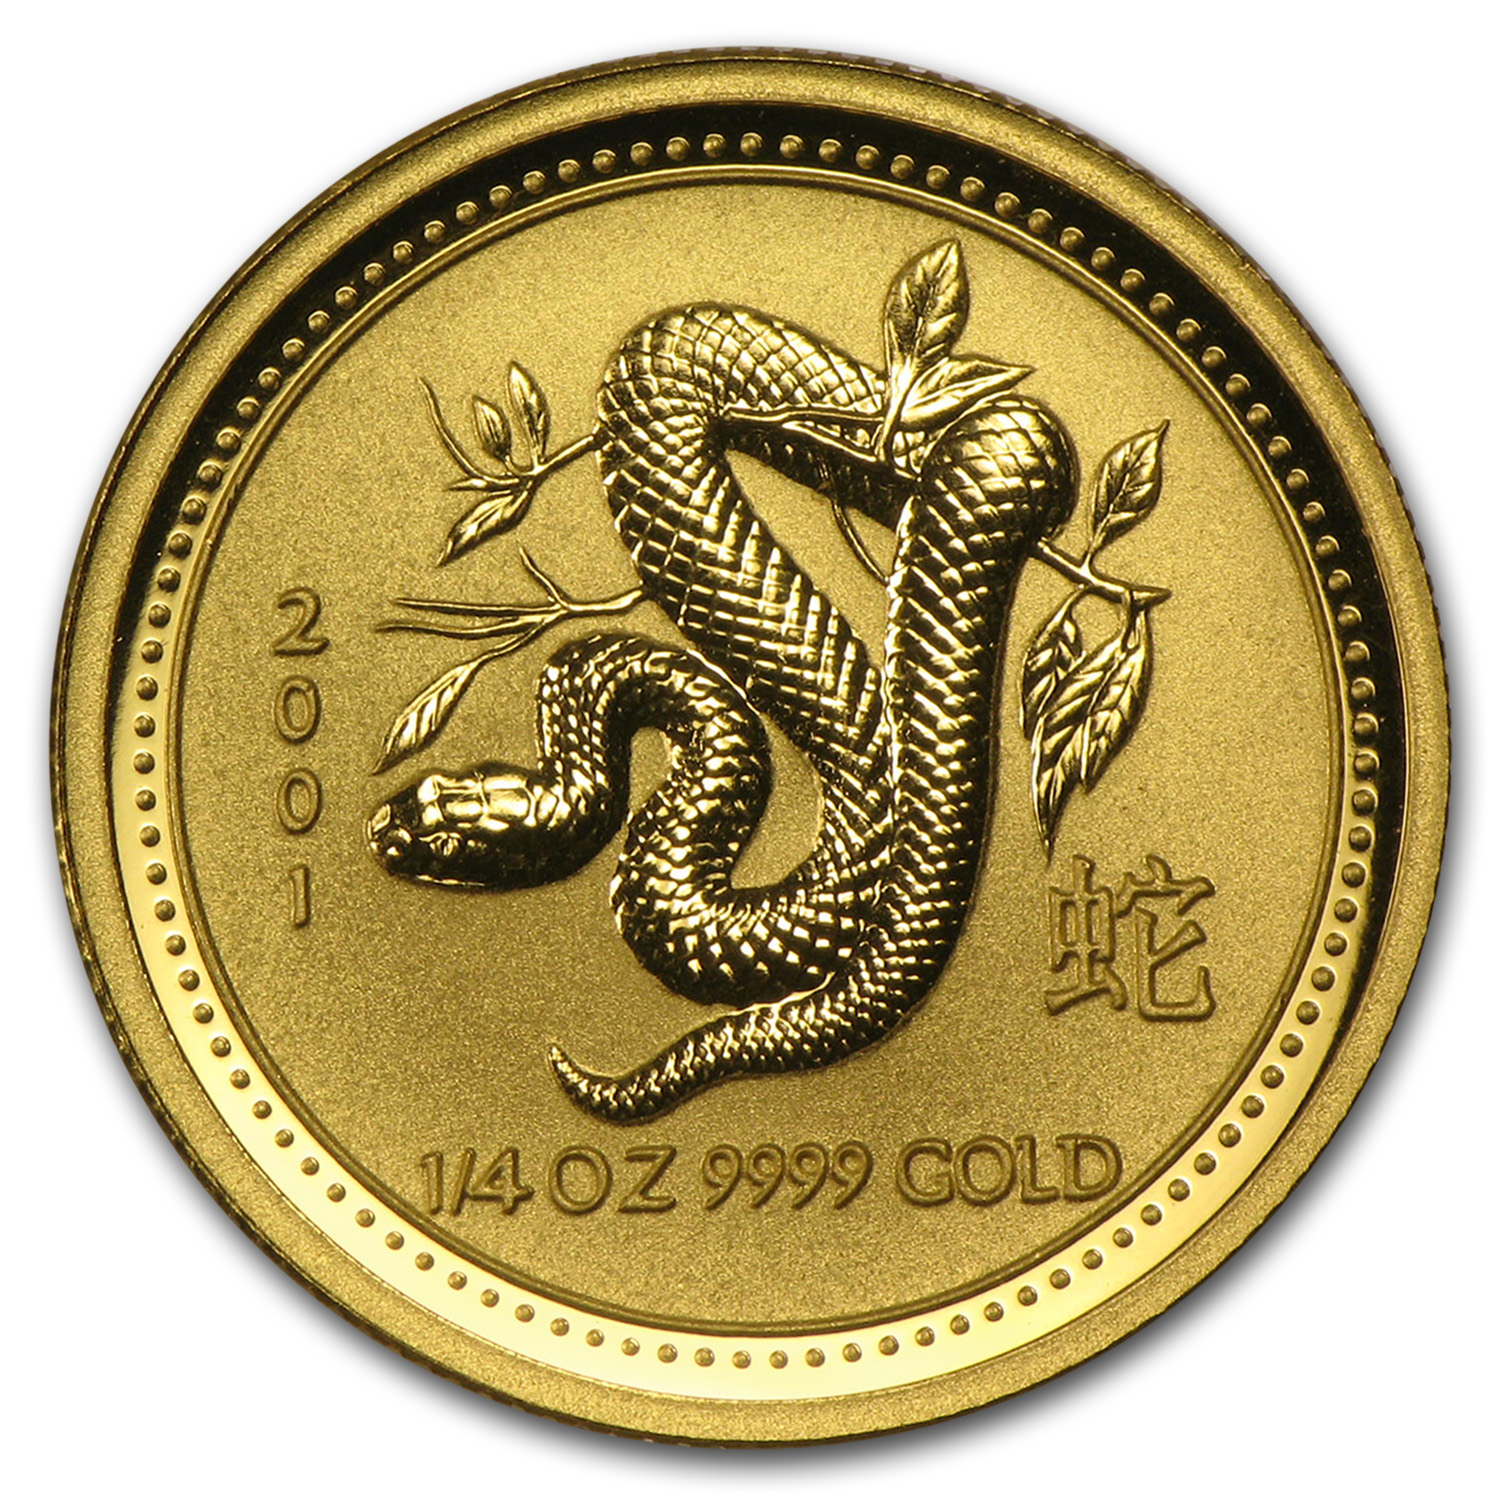 2001 1/4 oz Gold Lunar Year of the Snake BU (Series I)